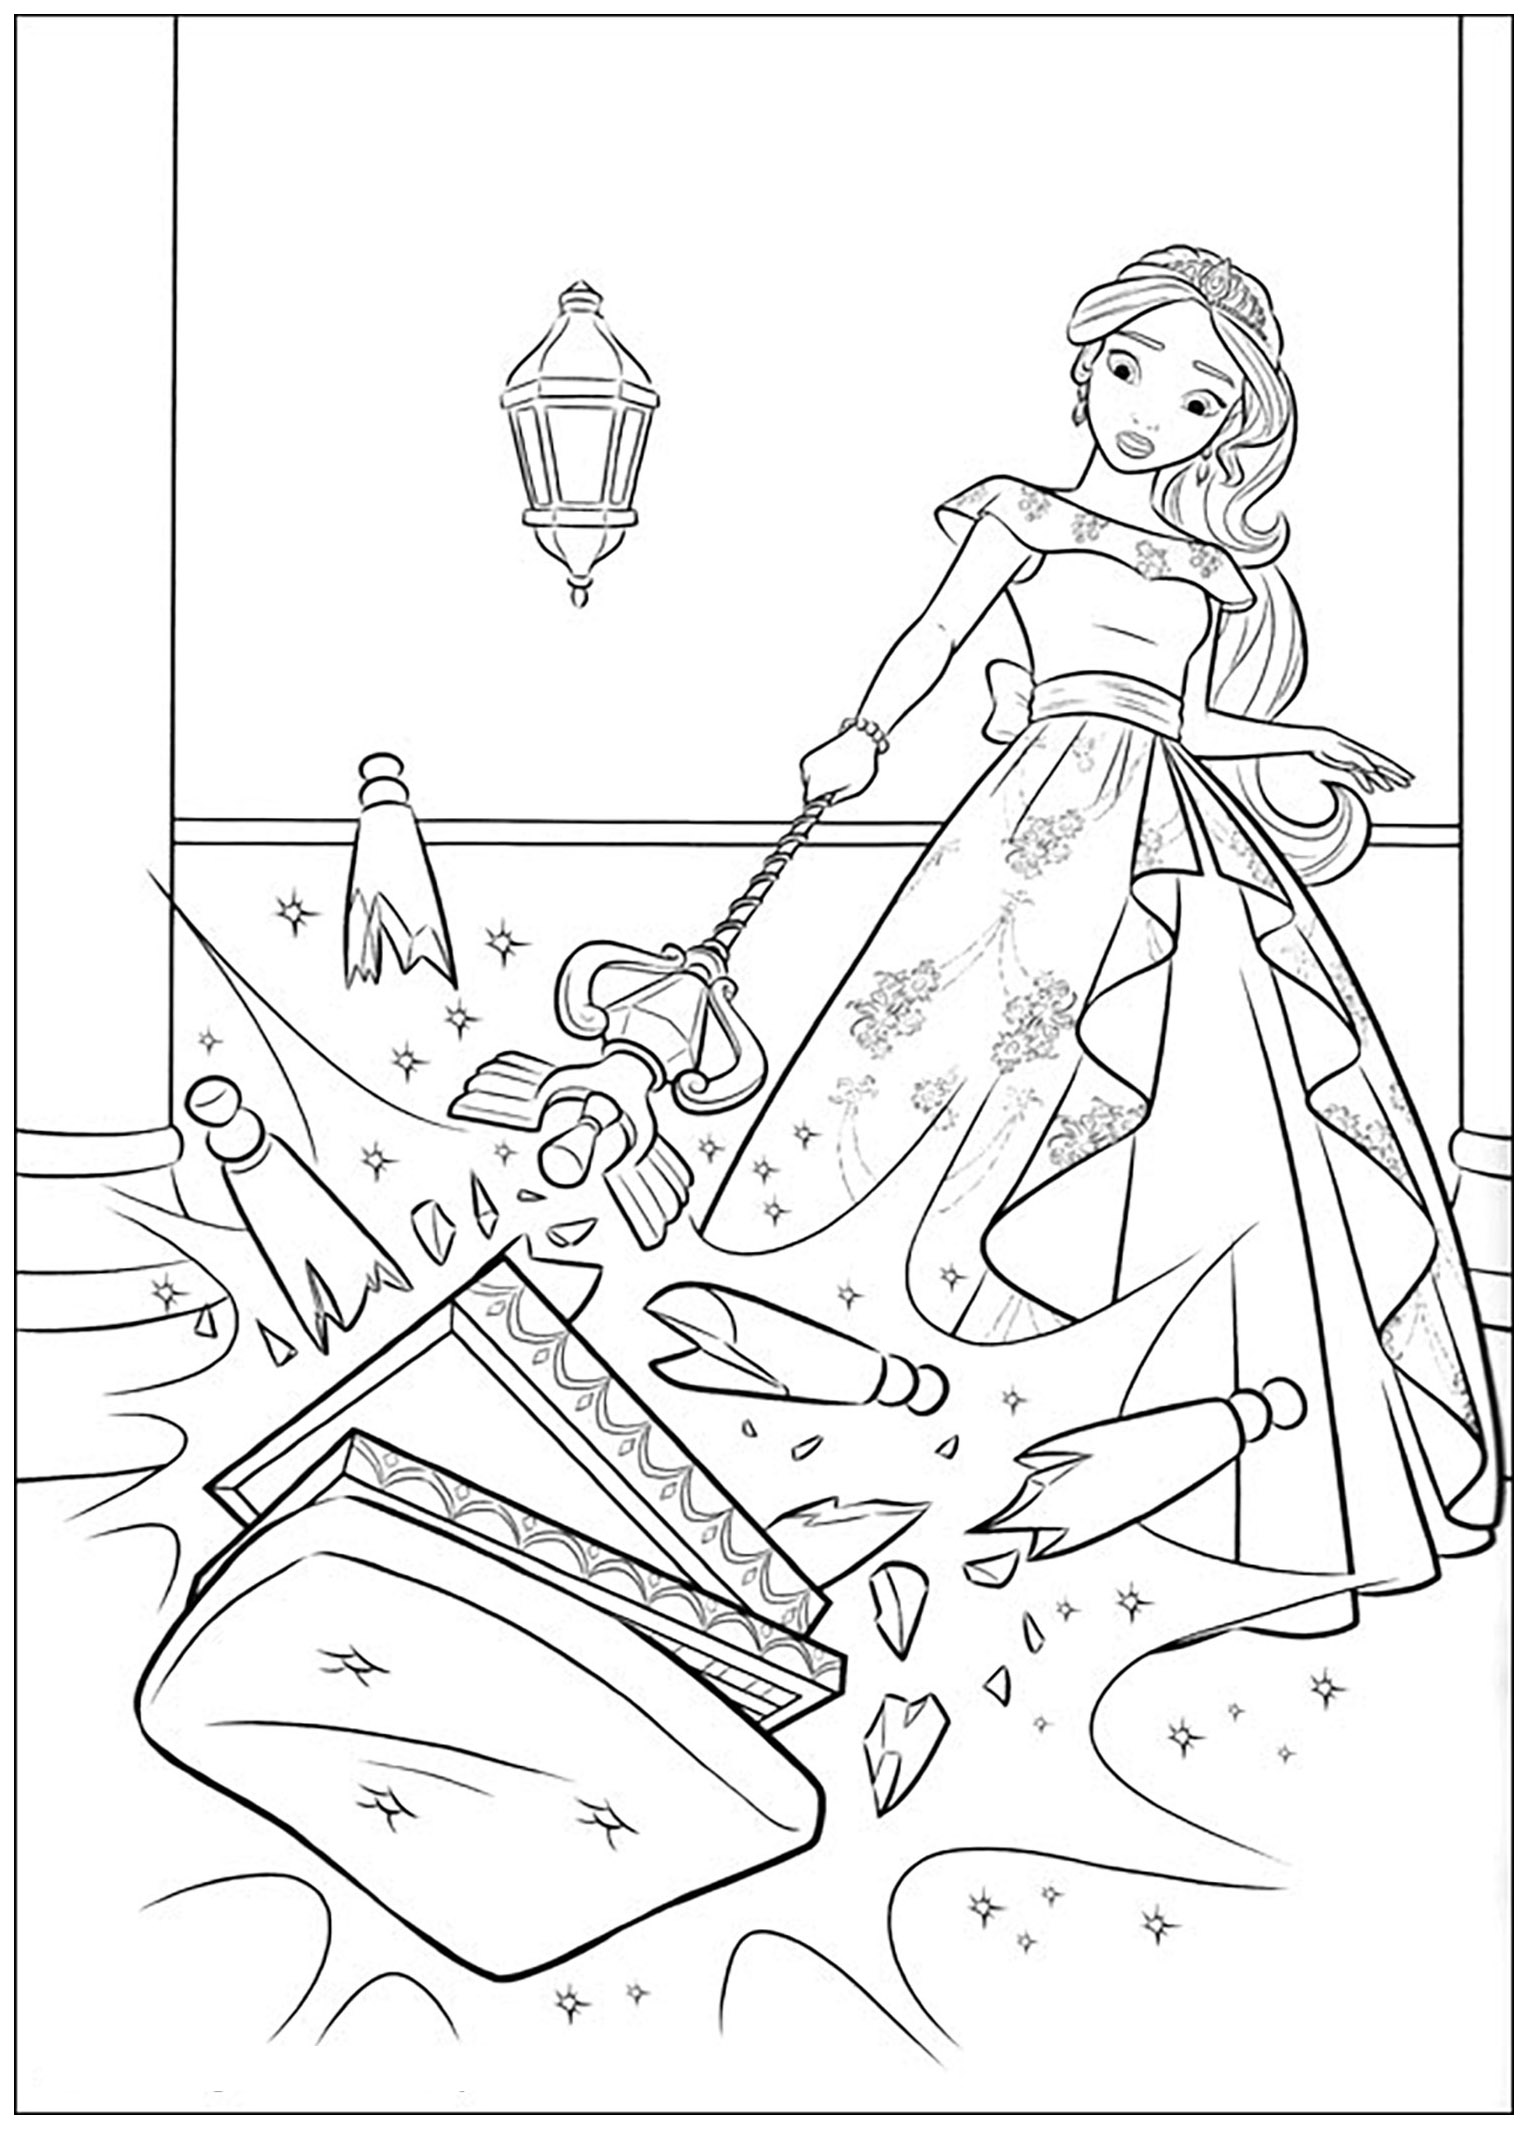 princess elena coloring pages elena of avalor coloring page for a year old princess princess elena coloring pages